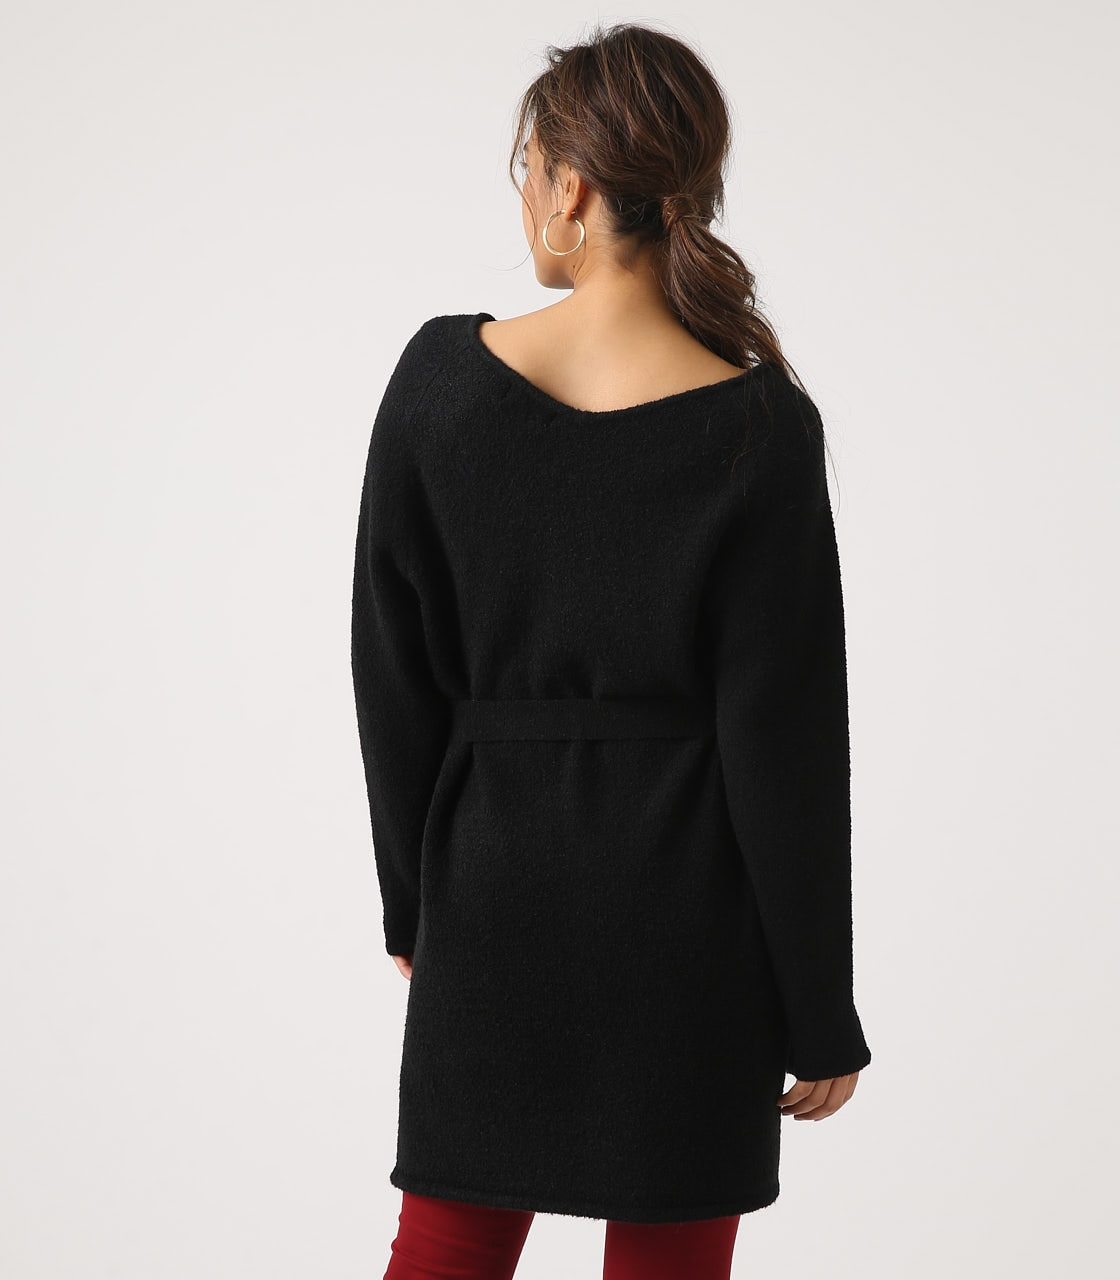 BELT SET V NECK KNIT TUNIC 詳細画像 BLK 7